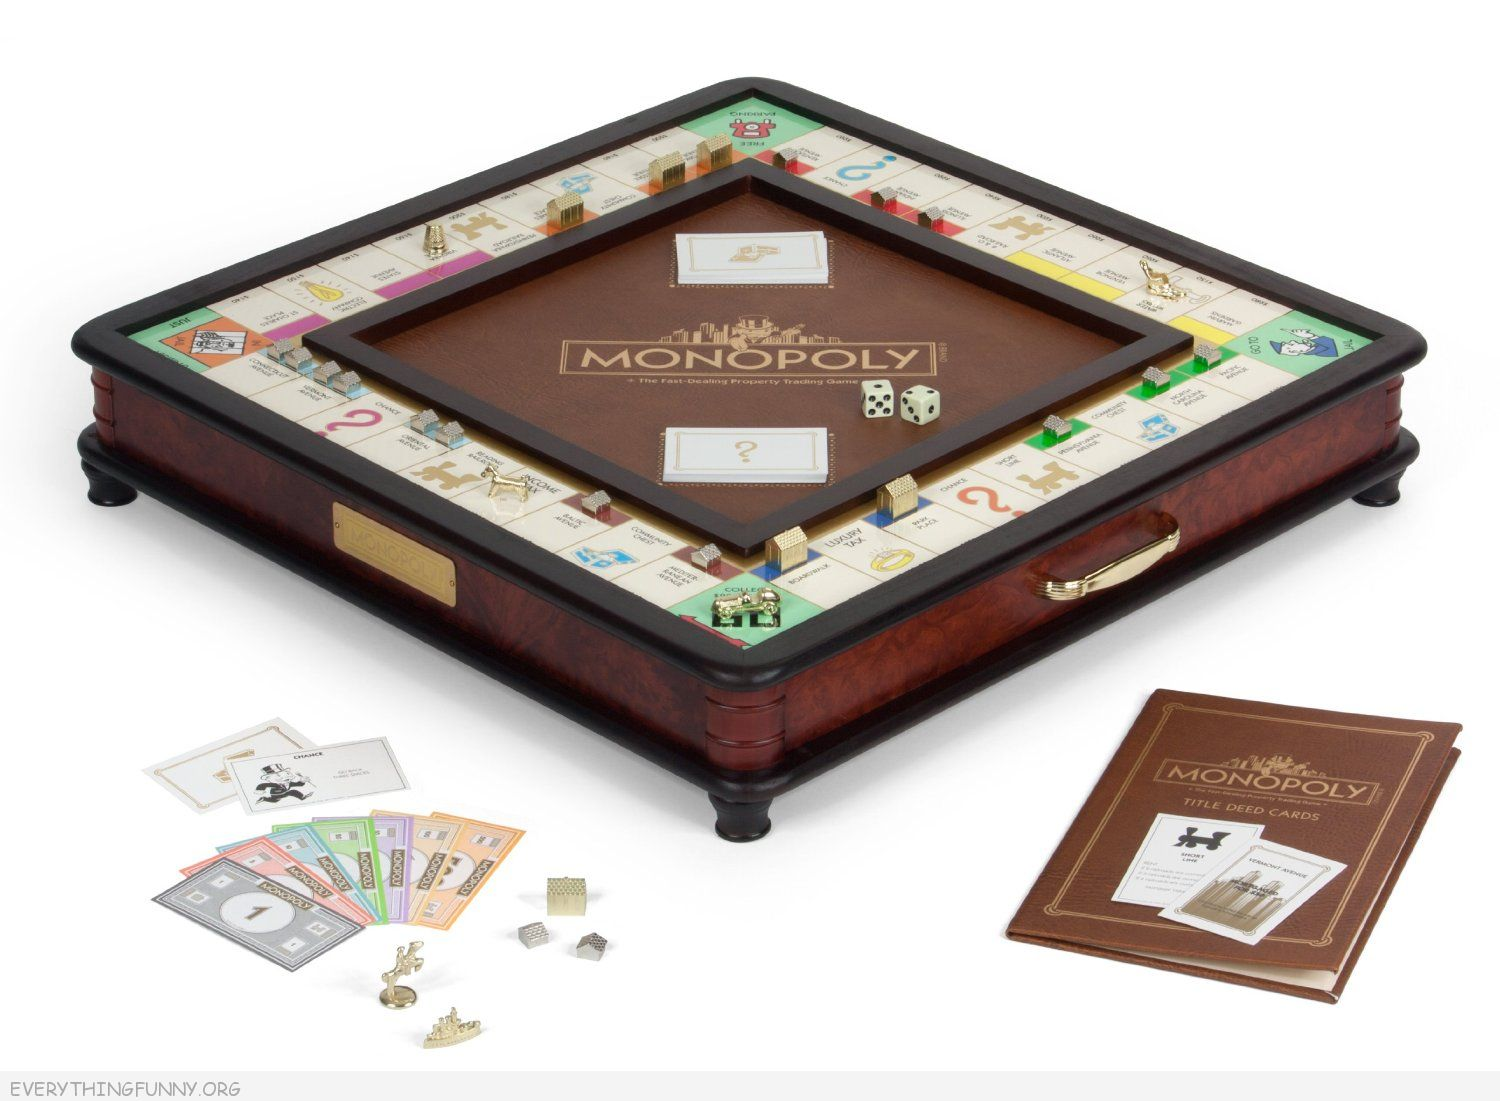 Luxury Monopoly game, executive monopoly,